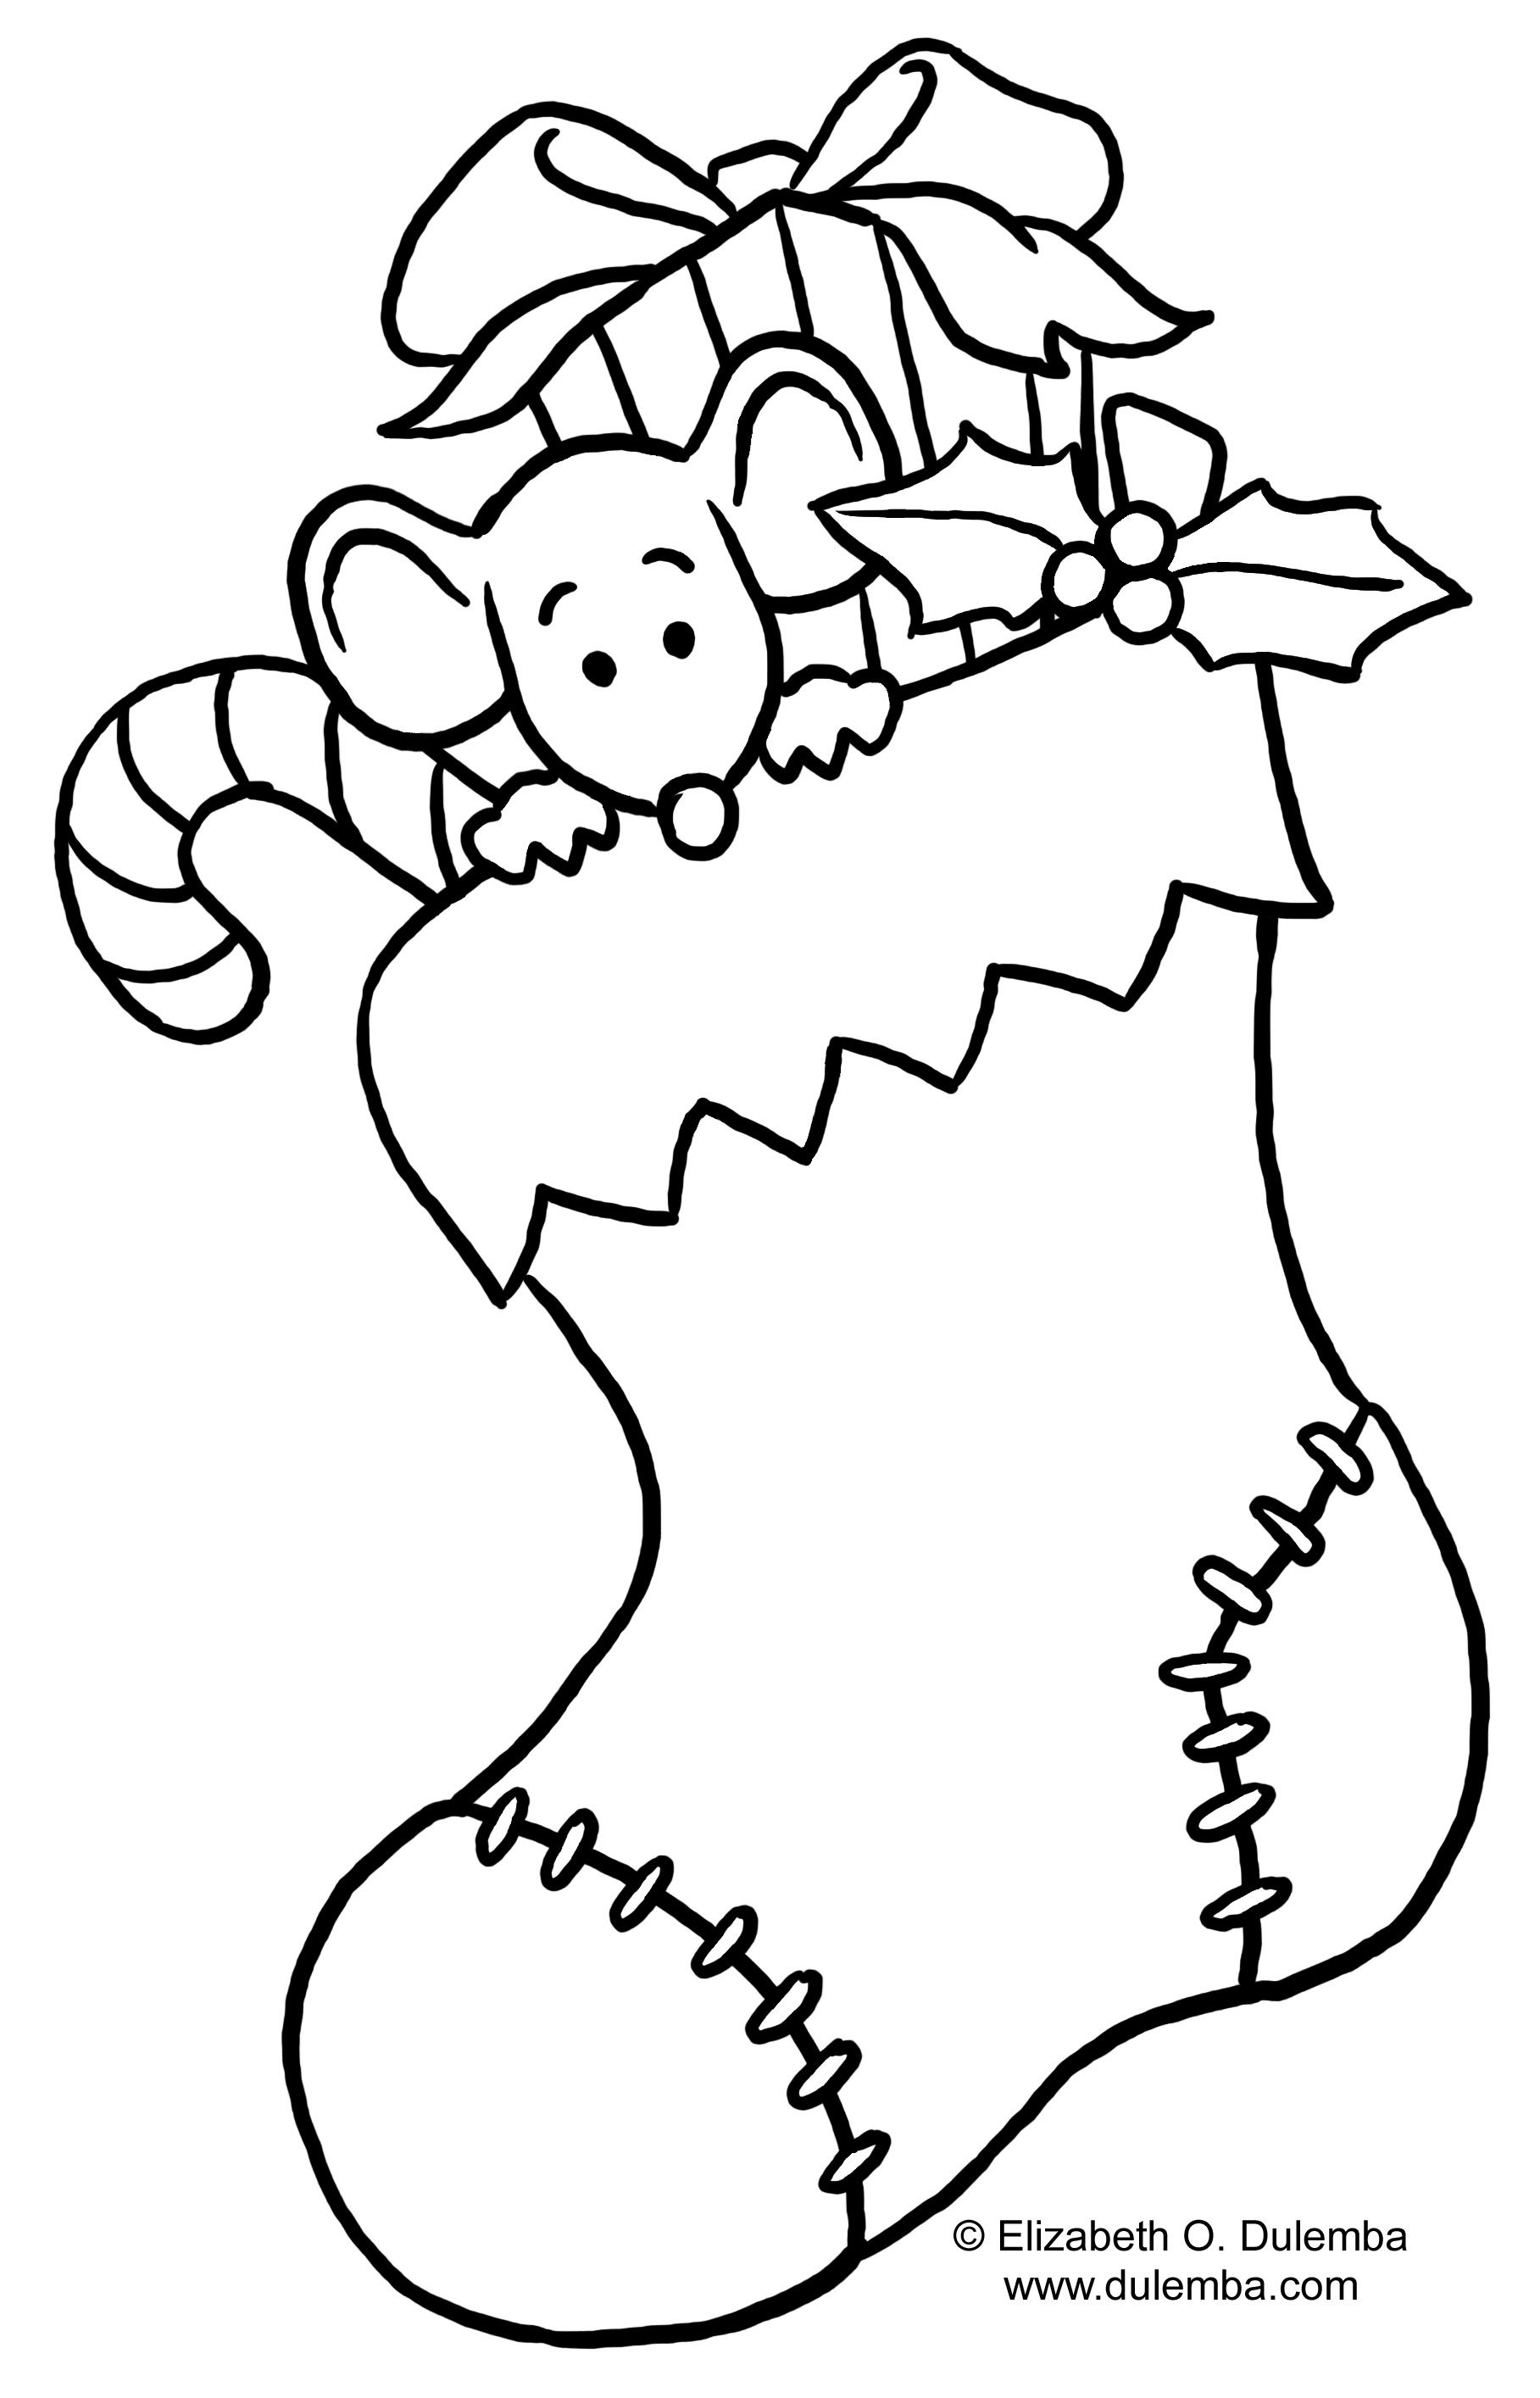 Coloring pages xmas decorations - Find This Pin And More On Coloring Pages